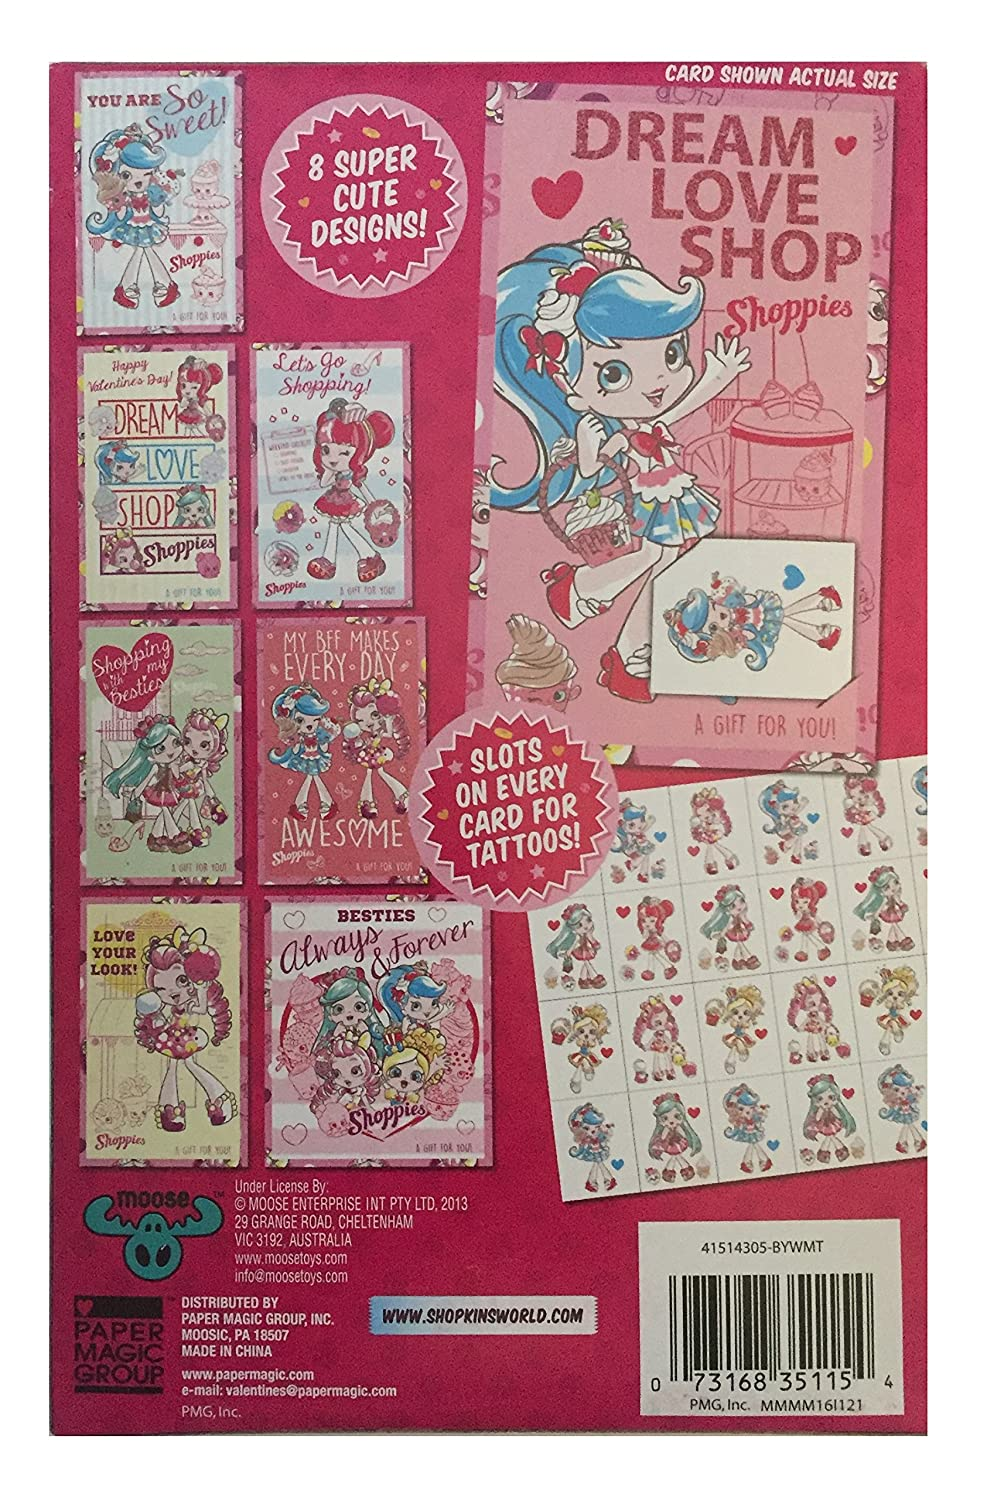 Amazon shopkins shoppies 32 valentines cards with tattoos amazon shopkins shoppies 32 valentines cards with tattoos office products m4hsunfo Gallery